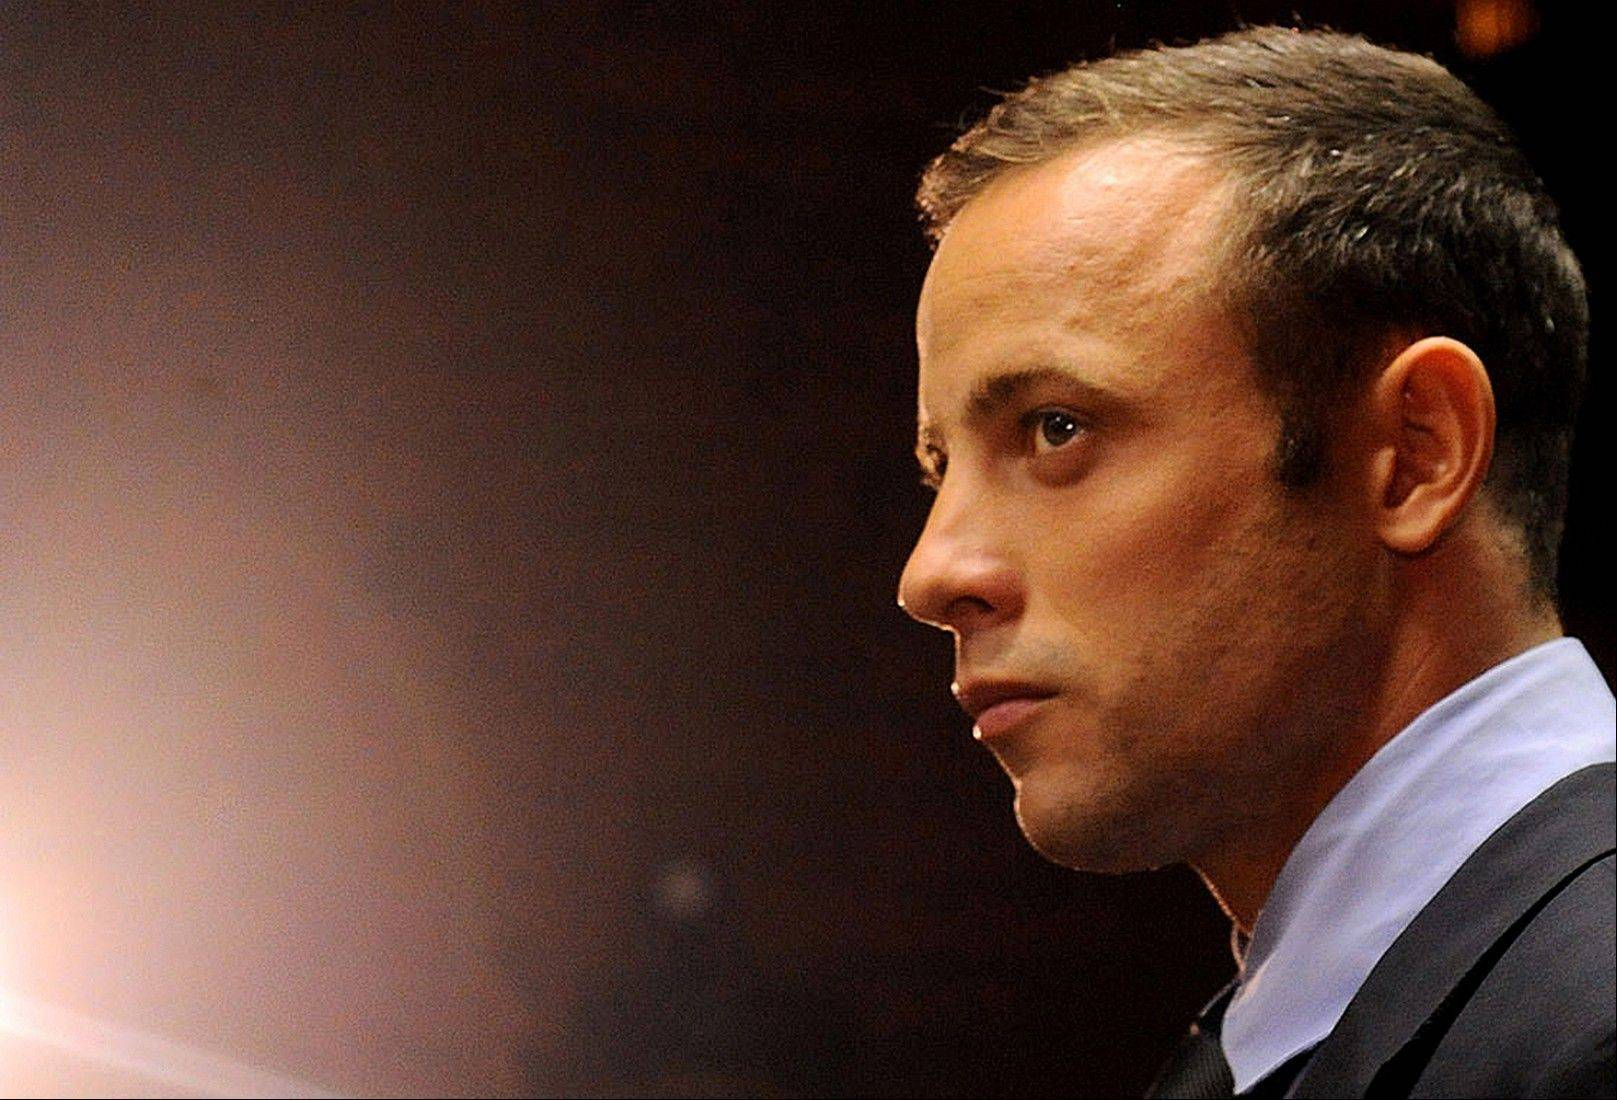 Oscar Pistorius was granted bail Friday, paving the way for him to be freed from custody pending his trial in the Valentine's Day shooting death of his girlfriend Reeva Steenkamp.